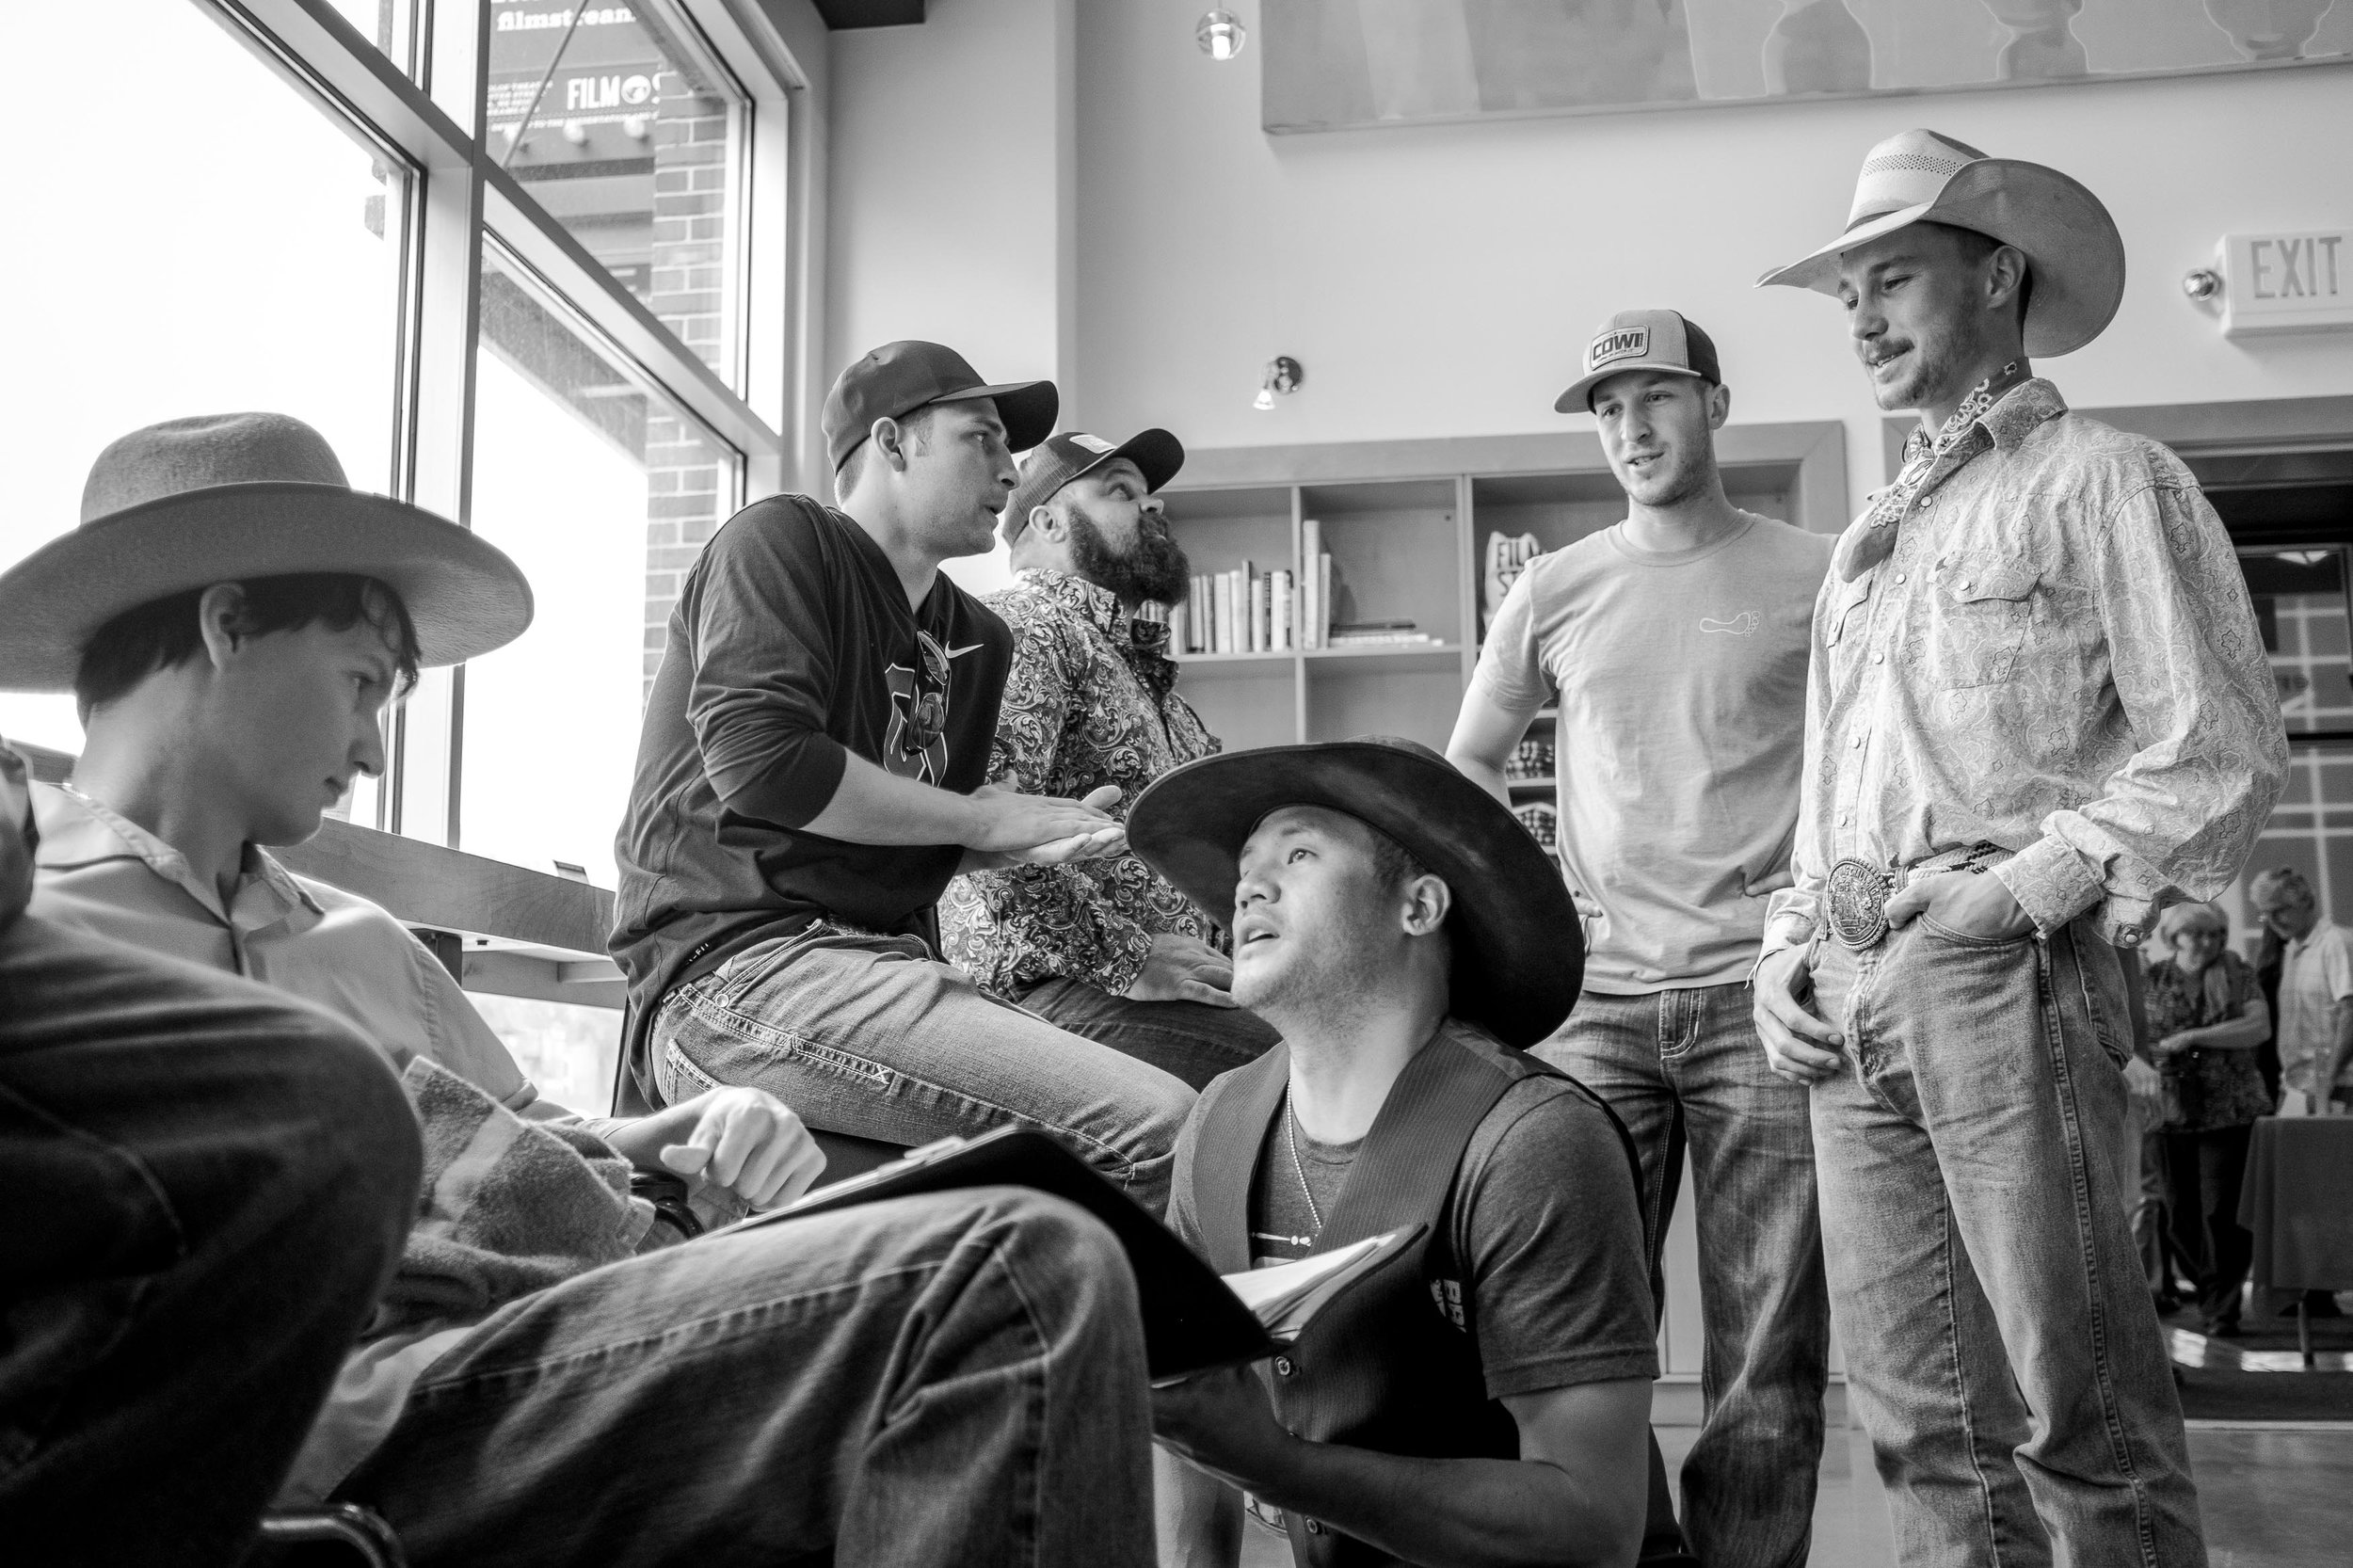 Lane Scott (far left) and Brady Jandreau (far right) catch up with rodeo friends before the screening of The Rider.